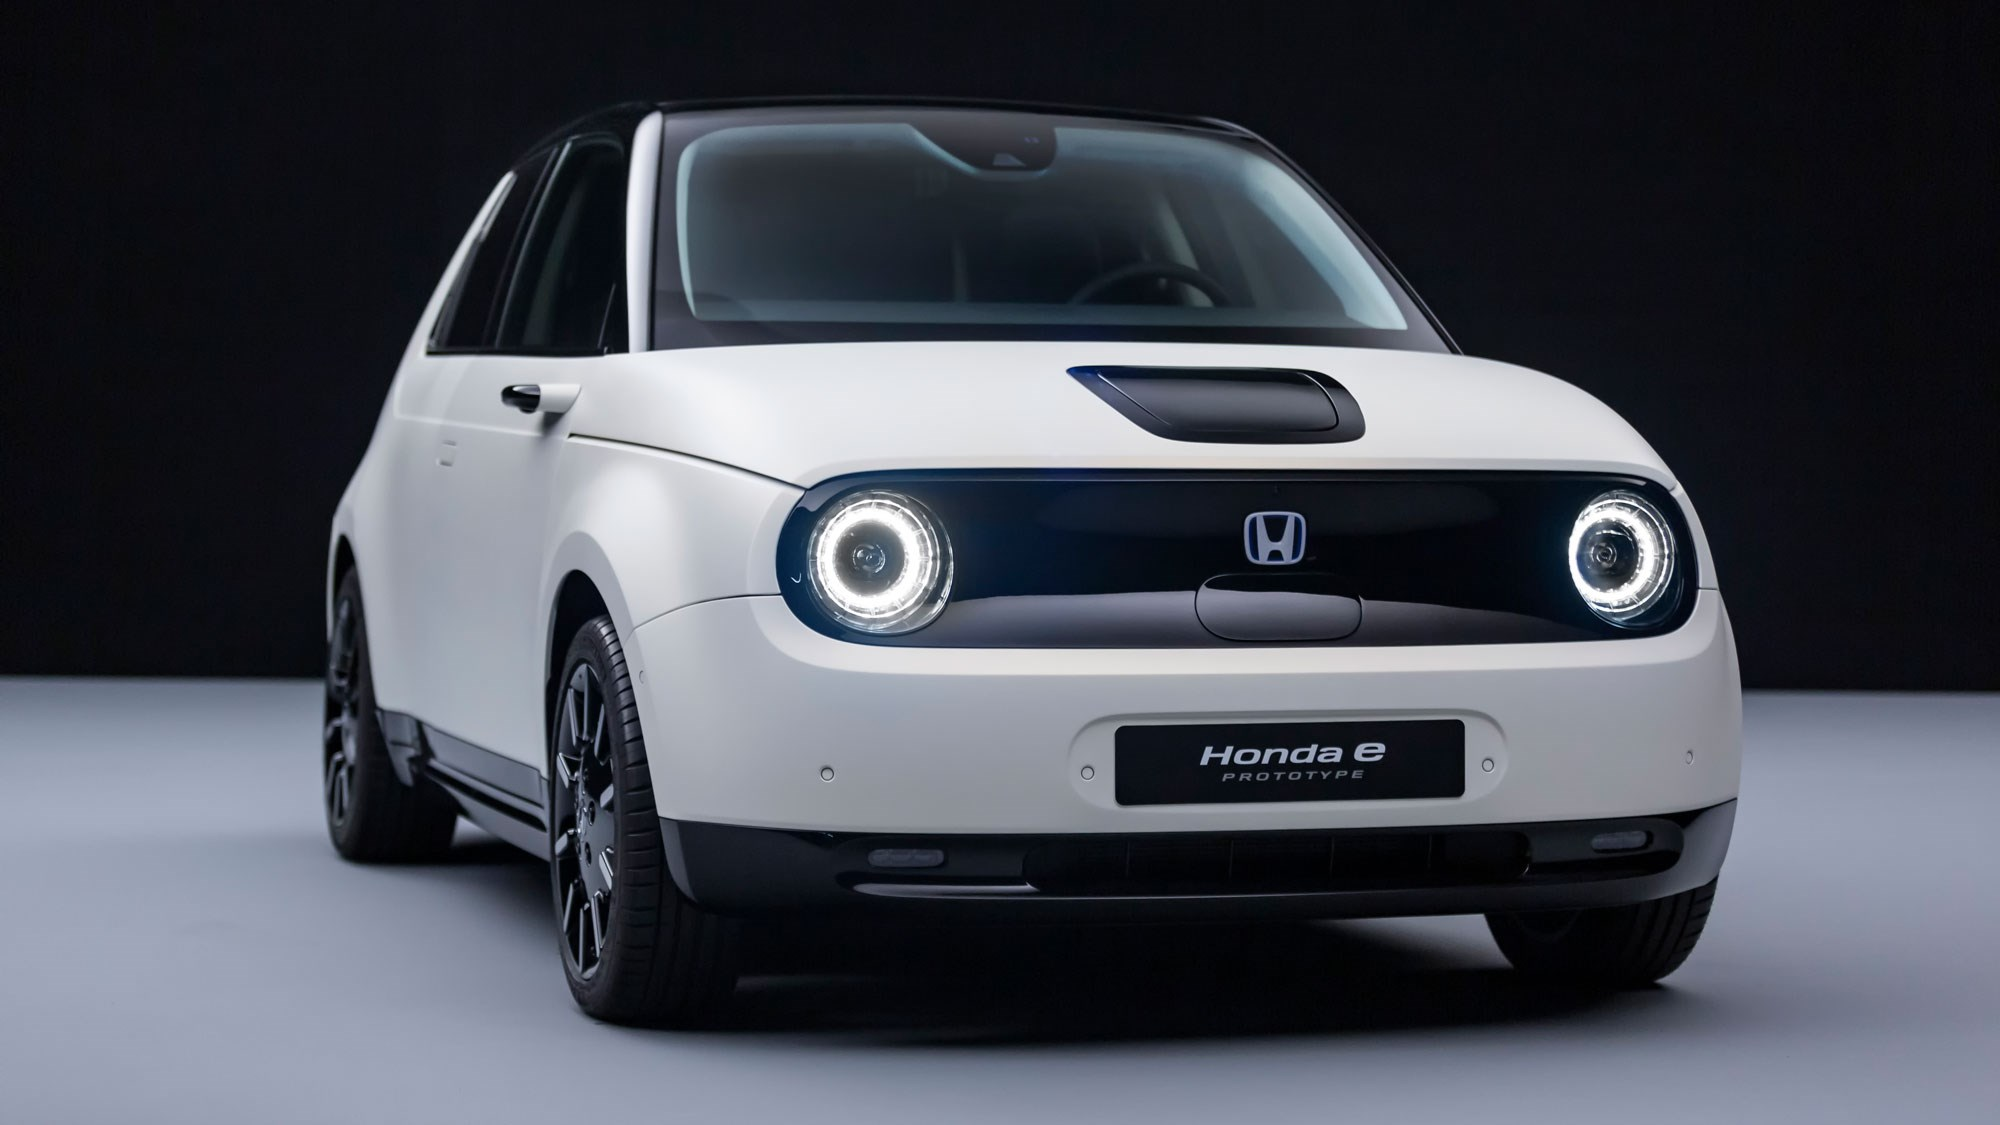 Image result for Honda e Prototype